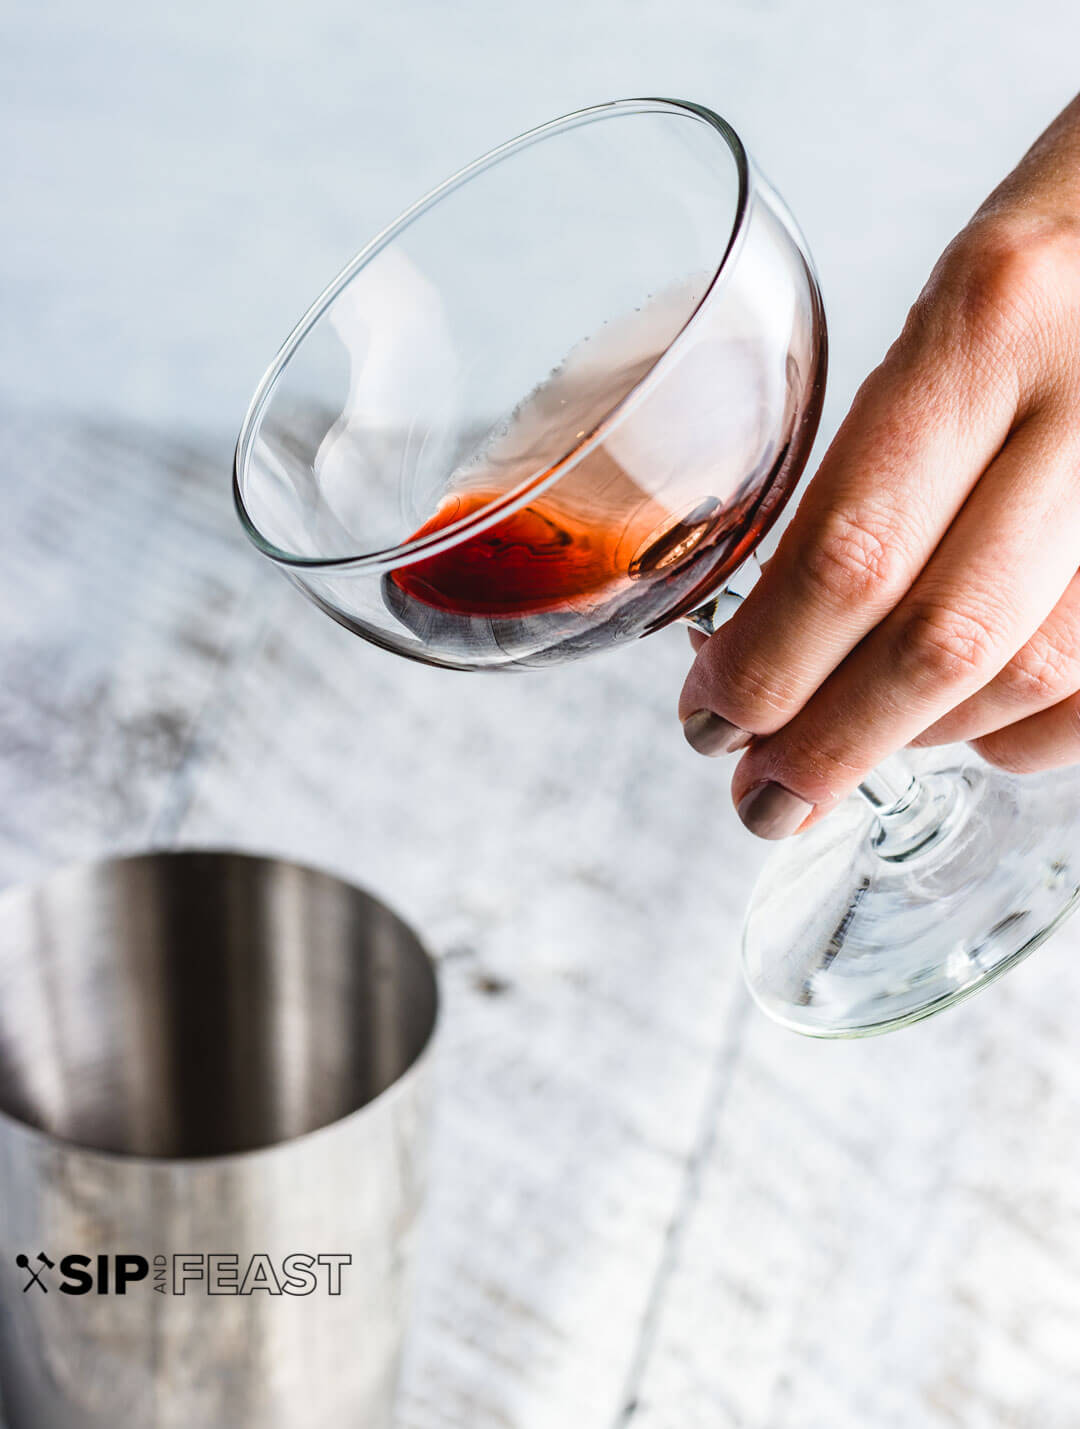 Hand holding a coupe glass with a coating of cherry syrup.